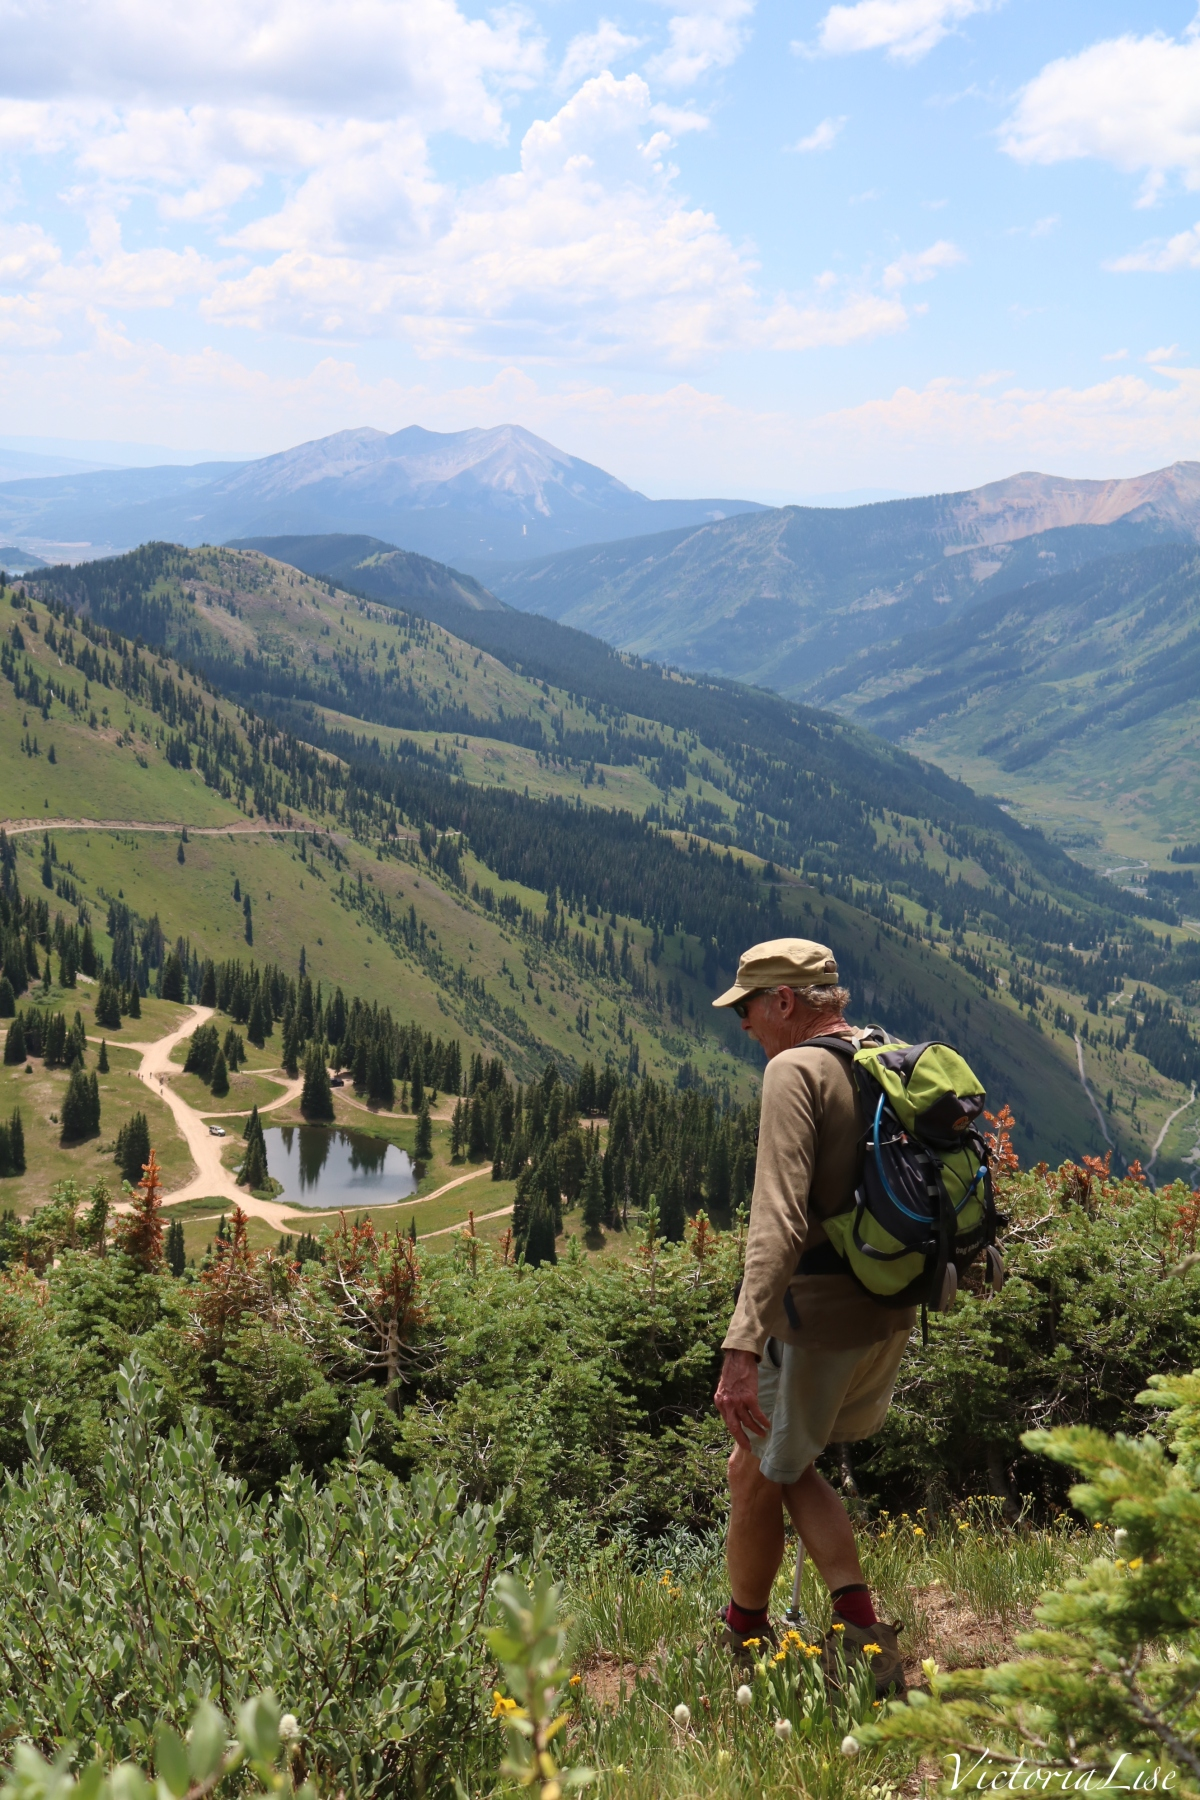 Summer hiking in The Gunnison National Forest. ©Victoria Lise 2018.